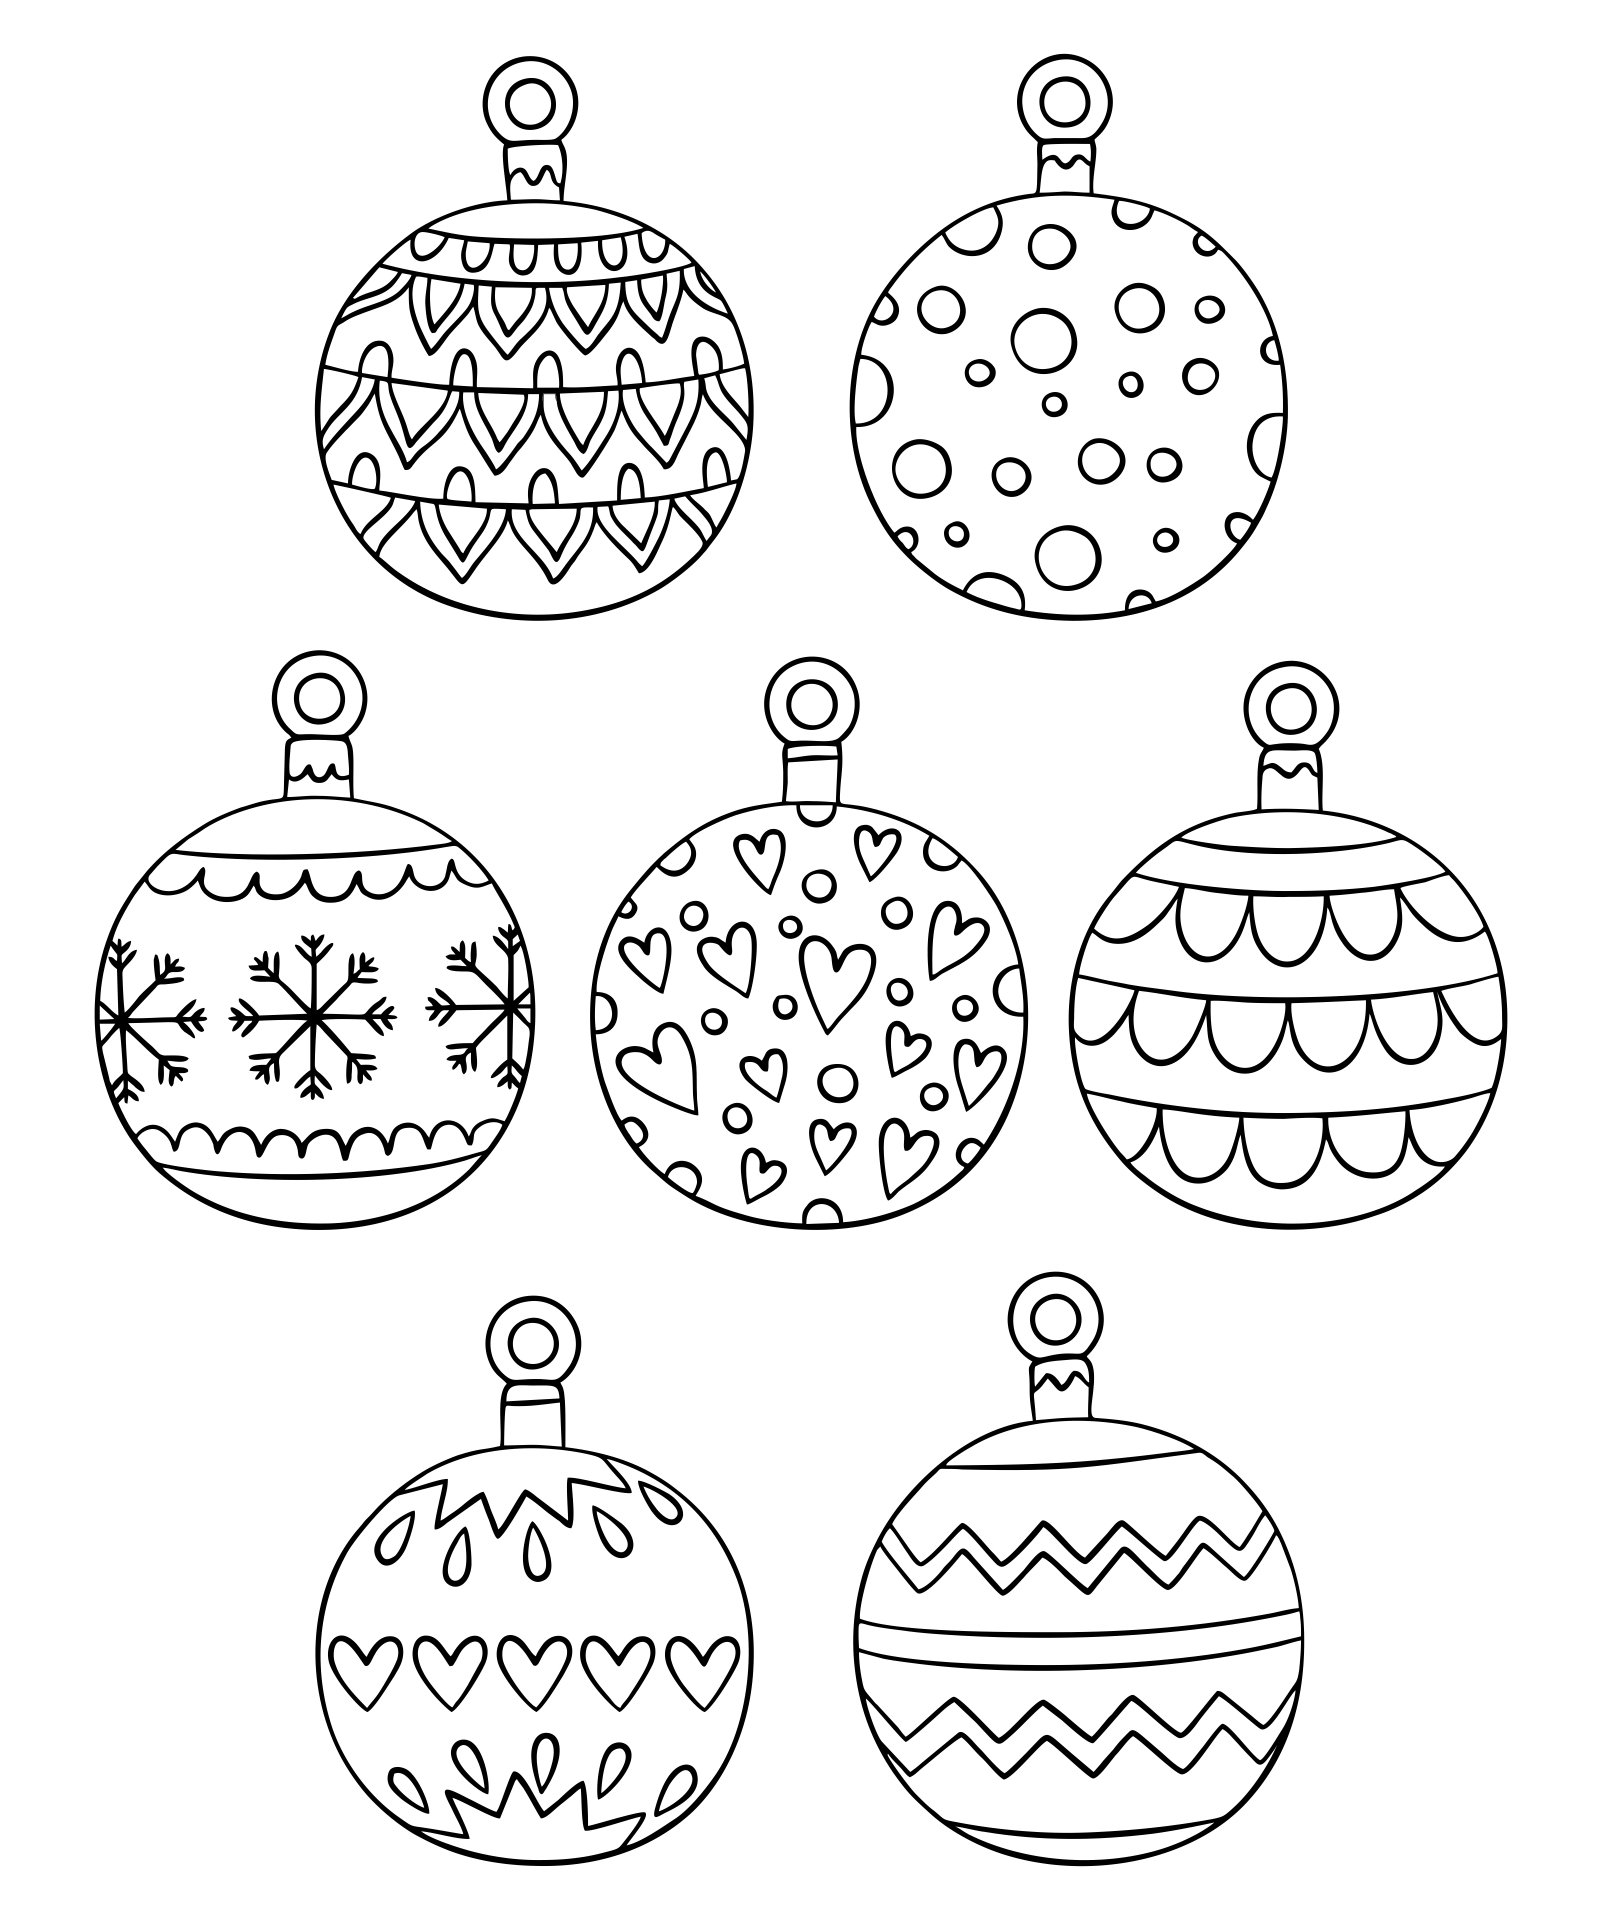 Printable Christmas Ornament Coloring Pages